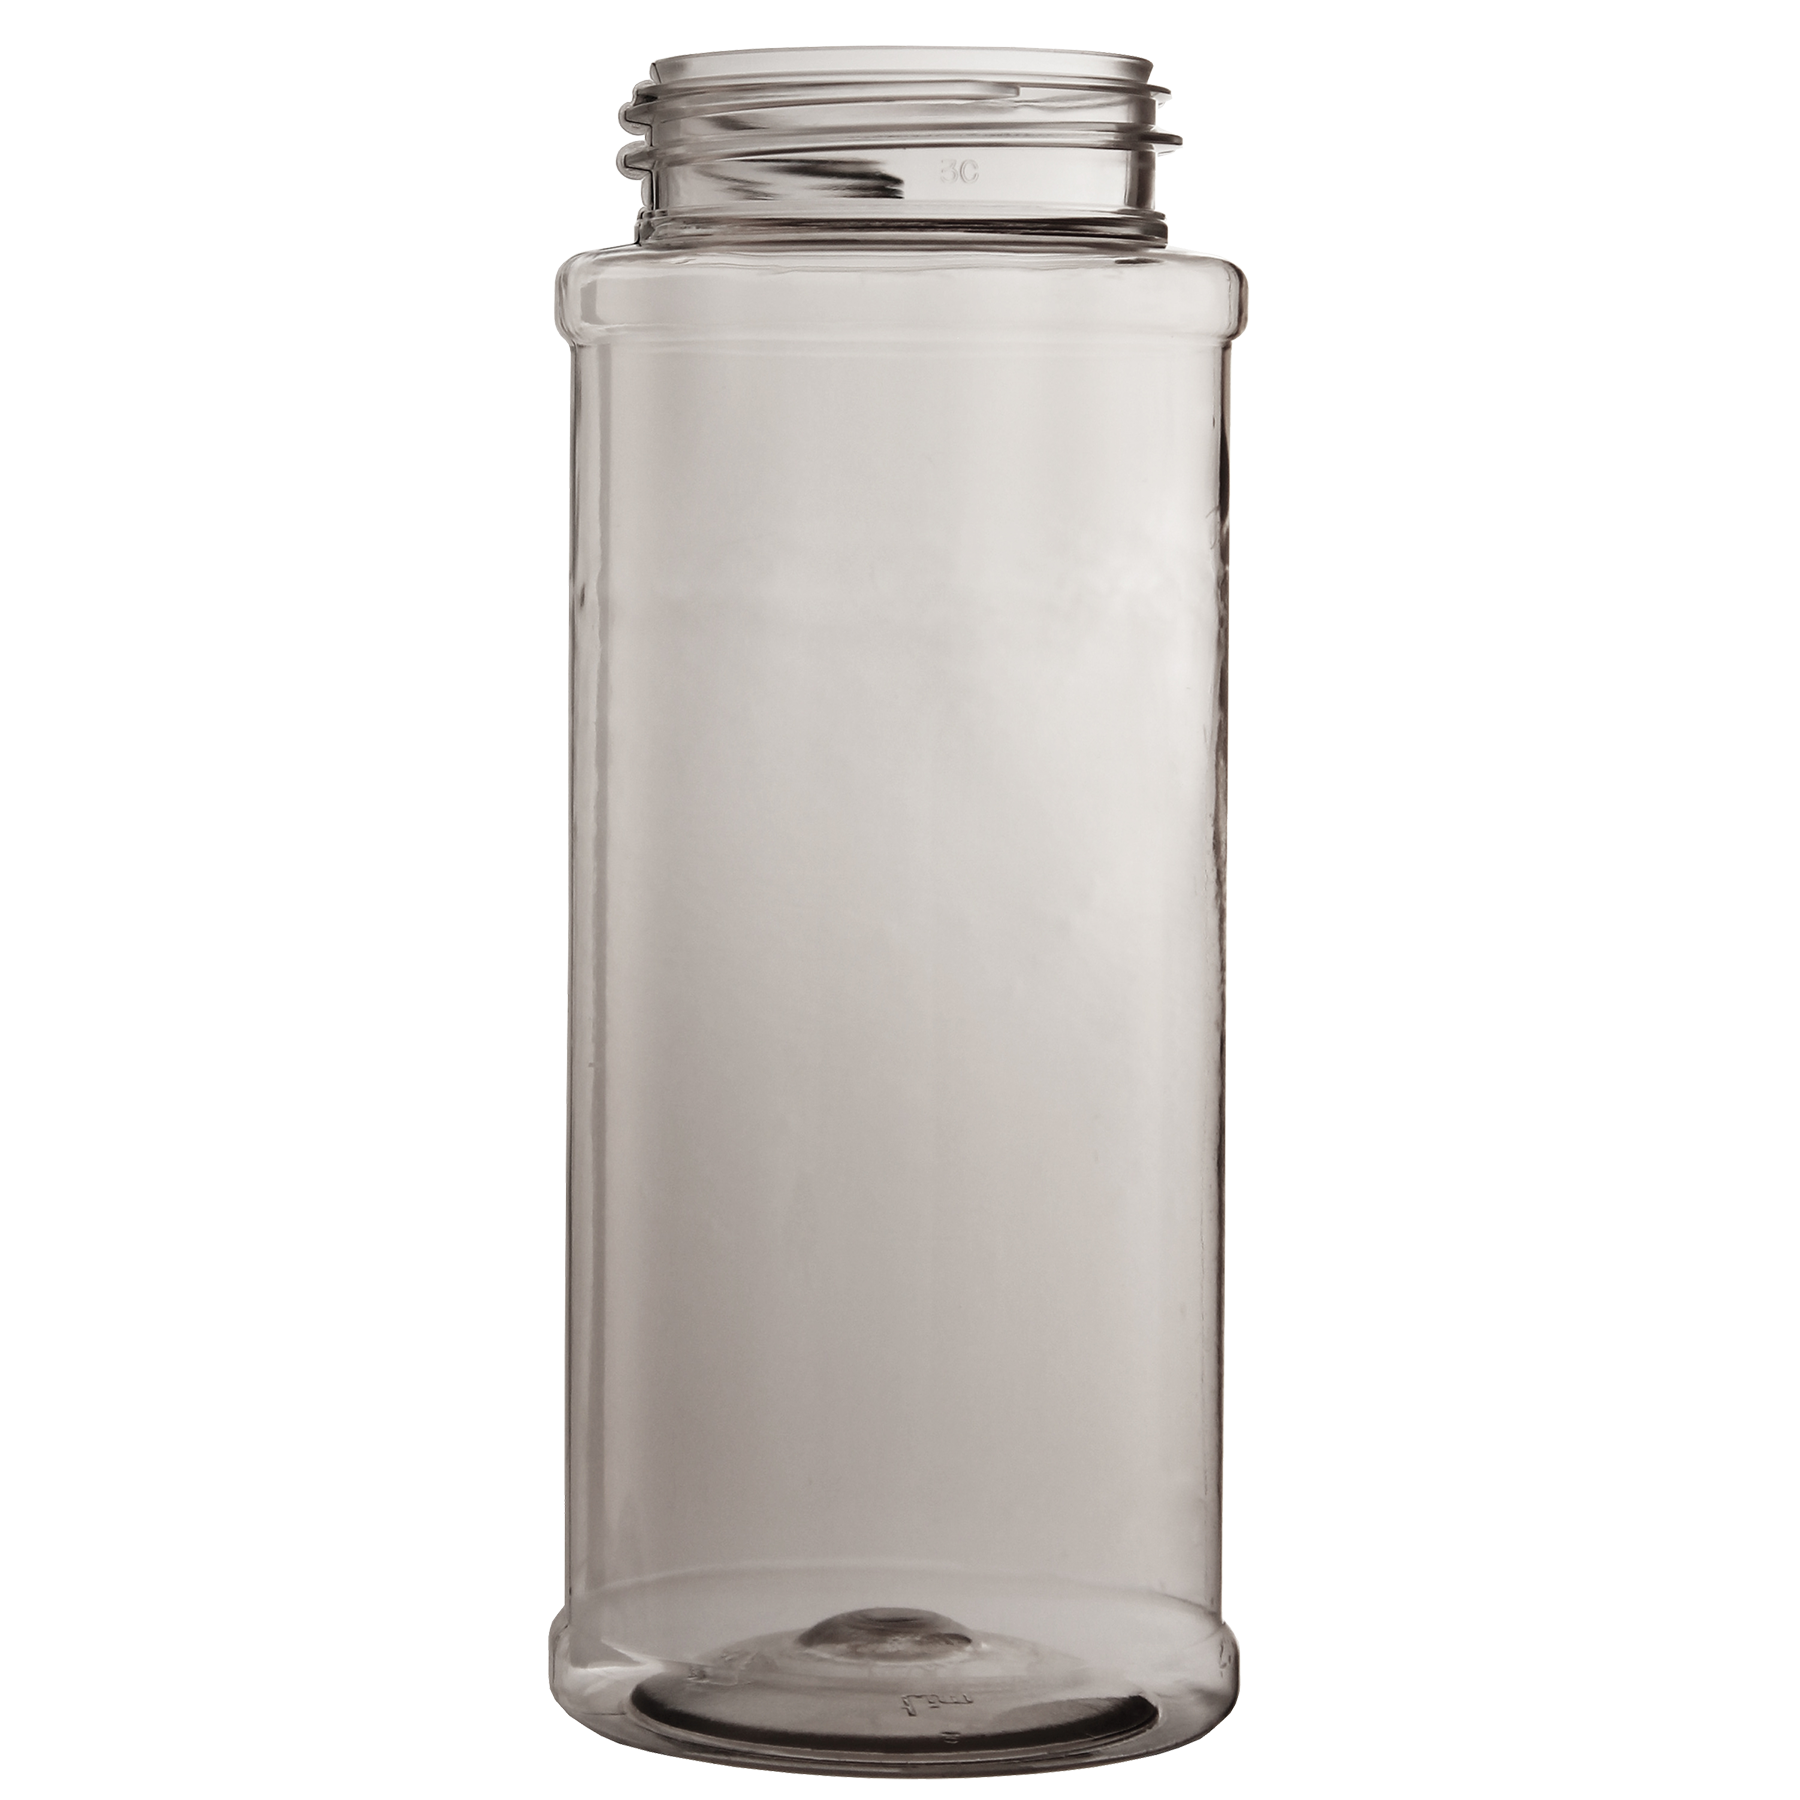 Jar transparent clear. Oz pet spice